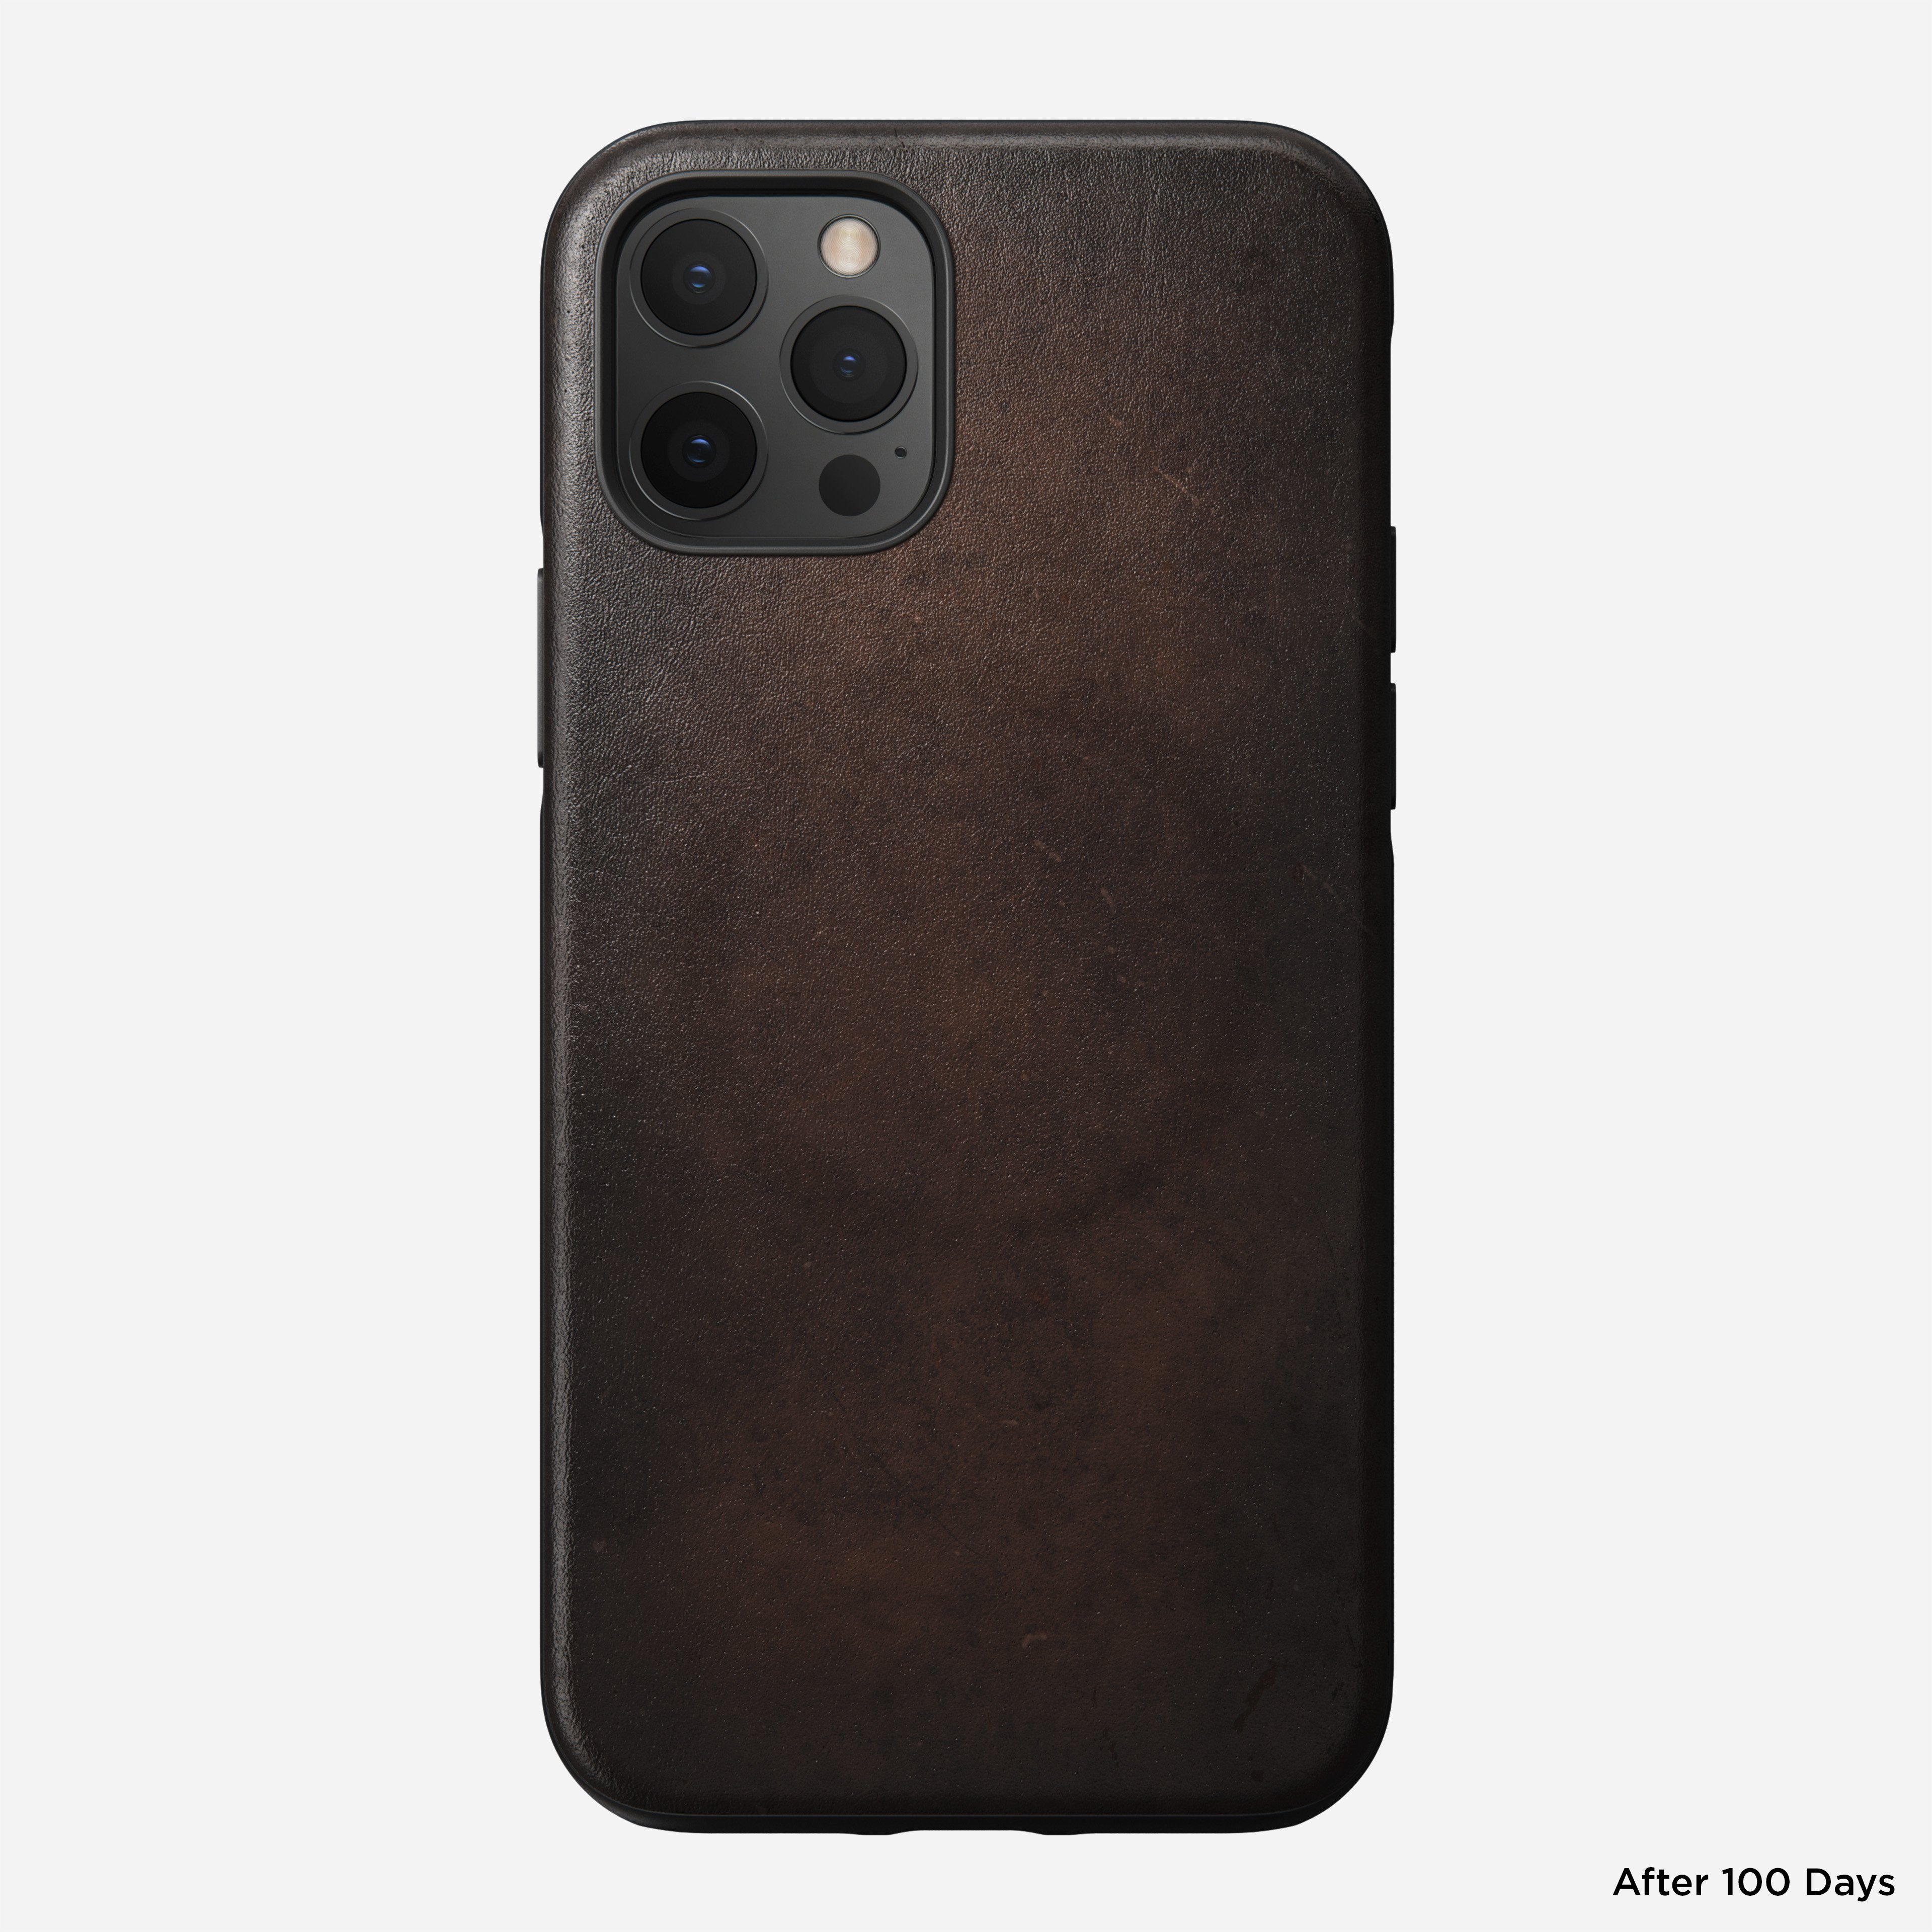 Rugged case magsafe horween leather rustic brown iphone 12 pro